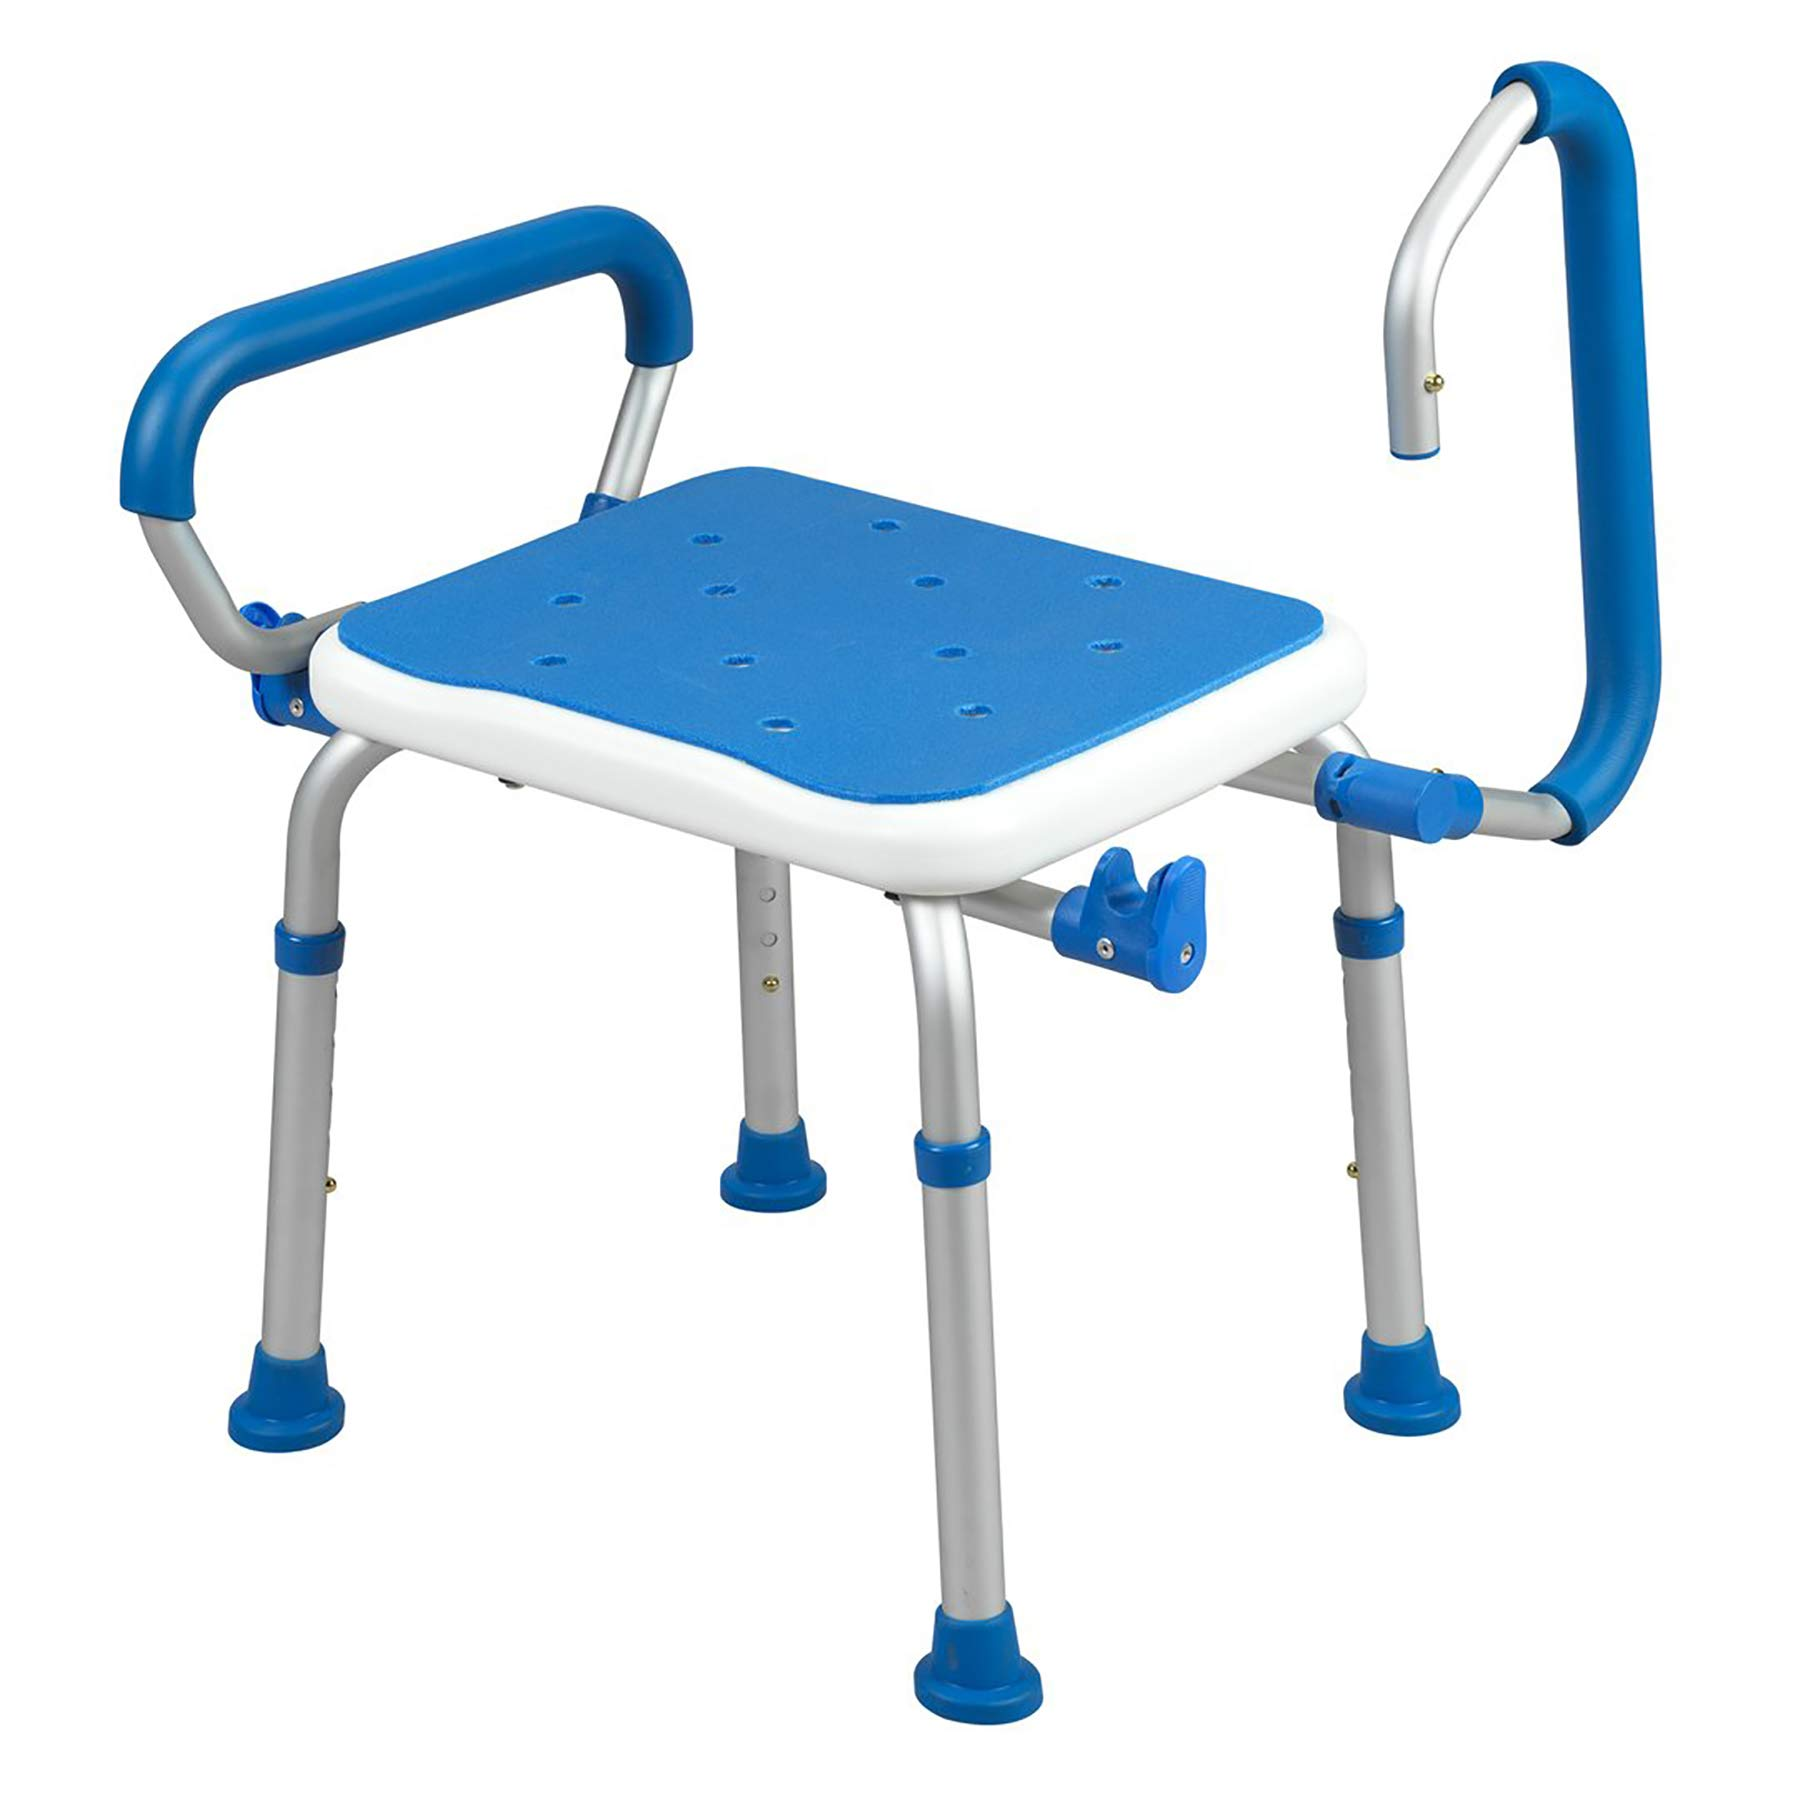 PCP Bath Bench Shower Safety seat, Swing arms, Adjustable Height, Medical Senior Living spa Stool, Blue